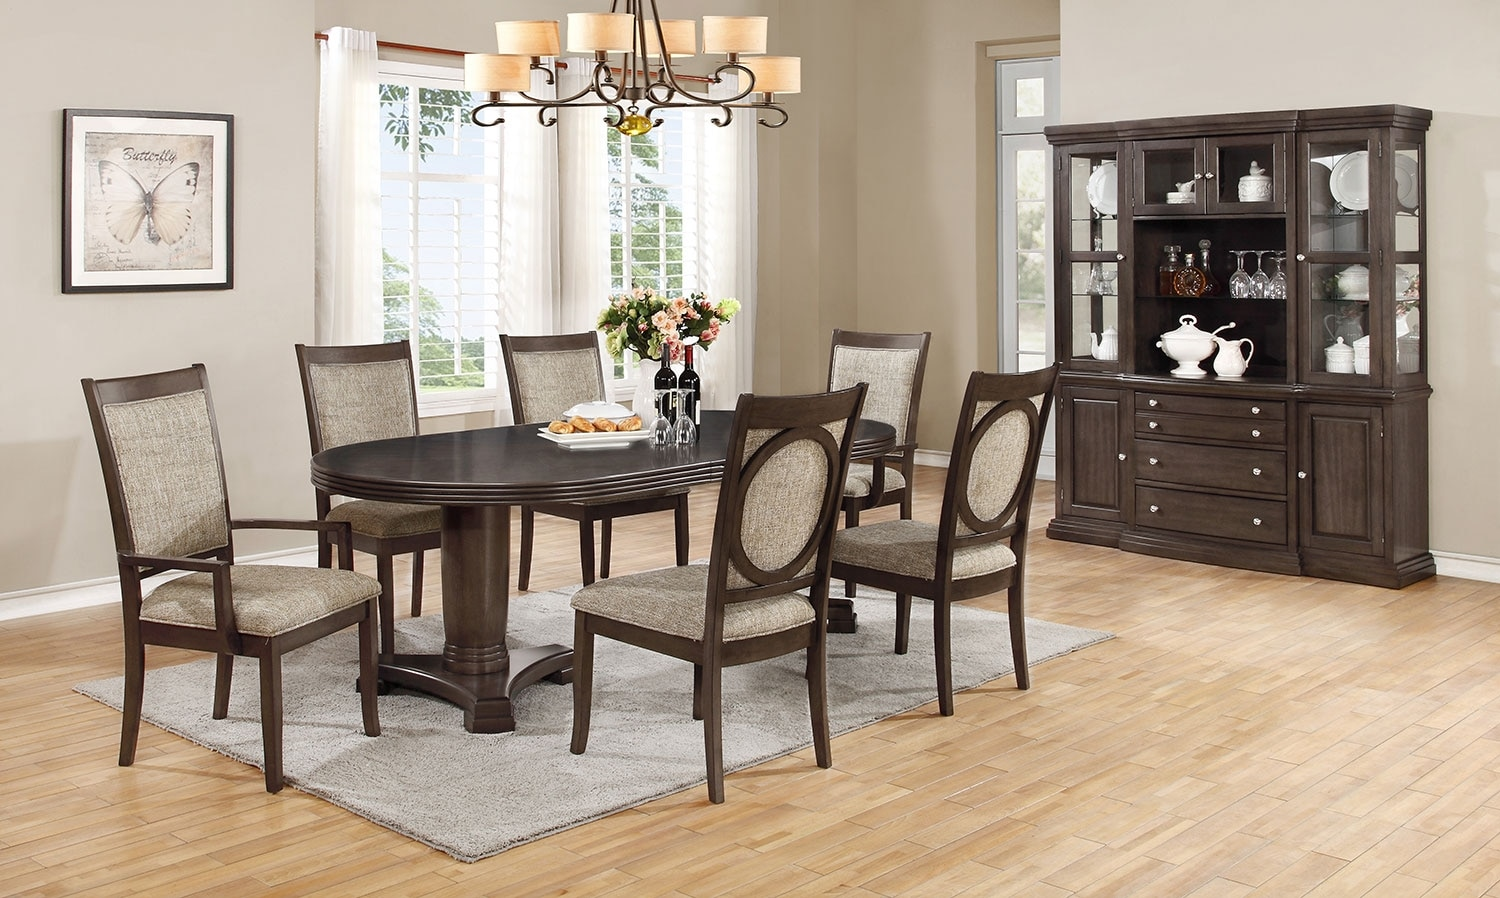 Dining Room Furniture - Beaumont 9-Piece Dining Package